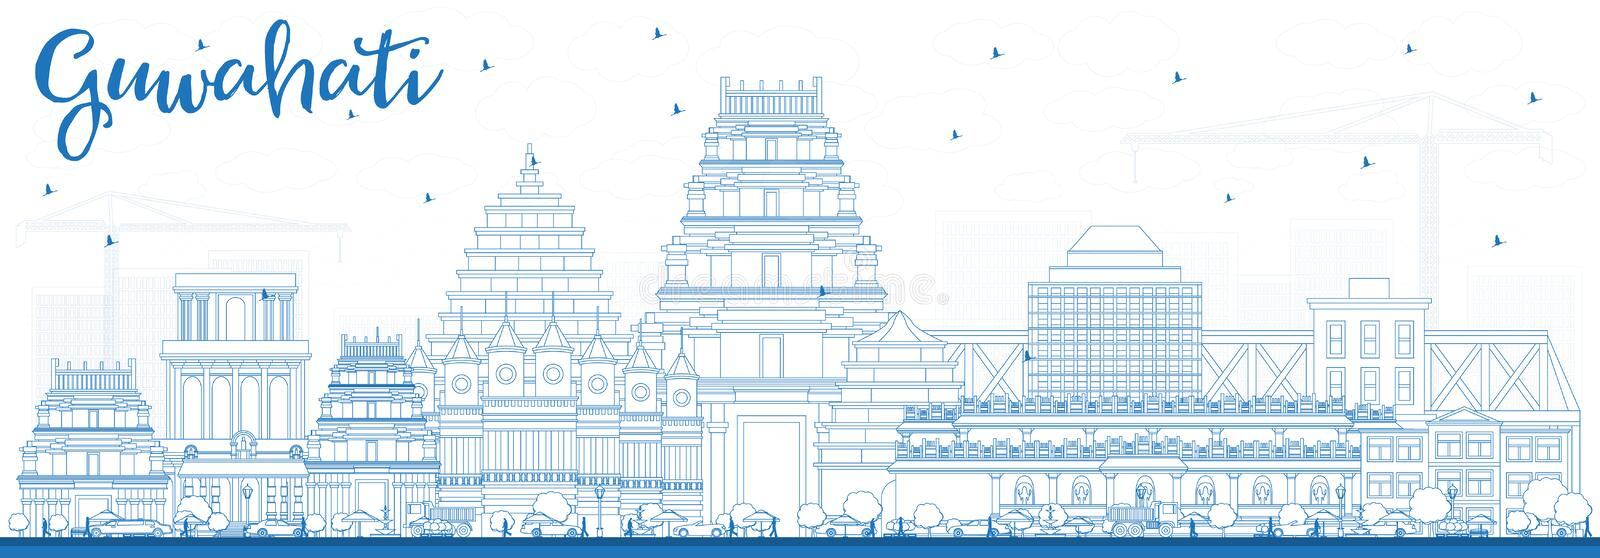 Outline Guwahati India City Skyline with Blue Buildings. Vector Illustration. Business Travel and Tourism Concept with Historic Architecture. Guwahati vector illustration